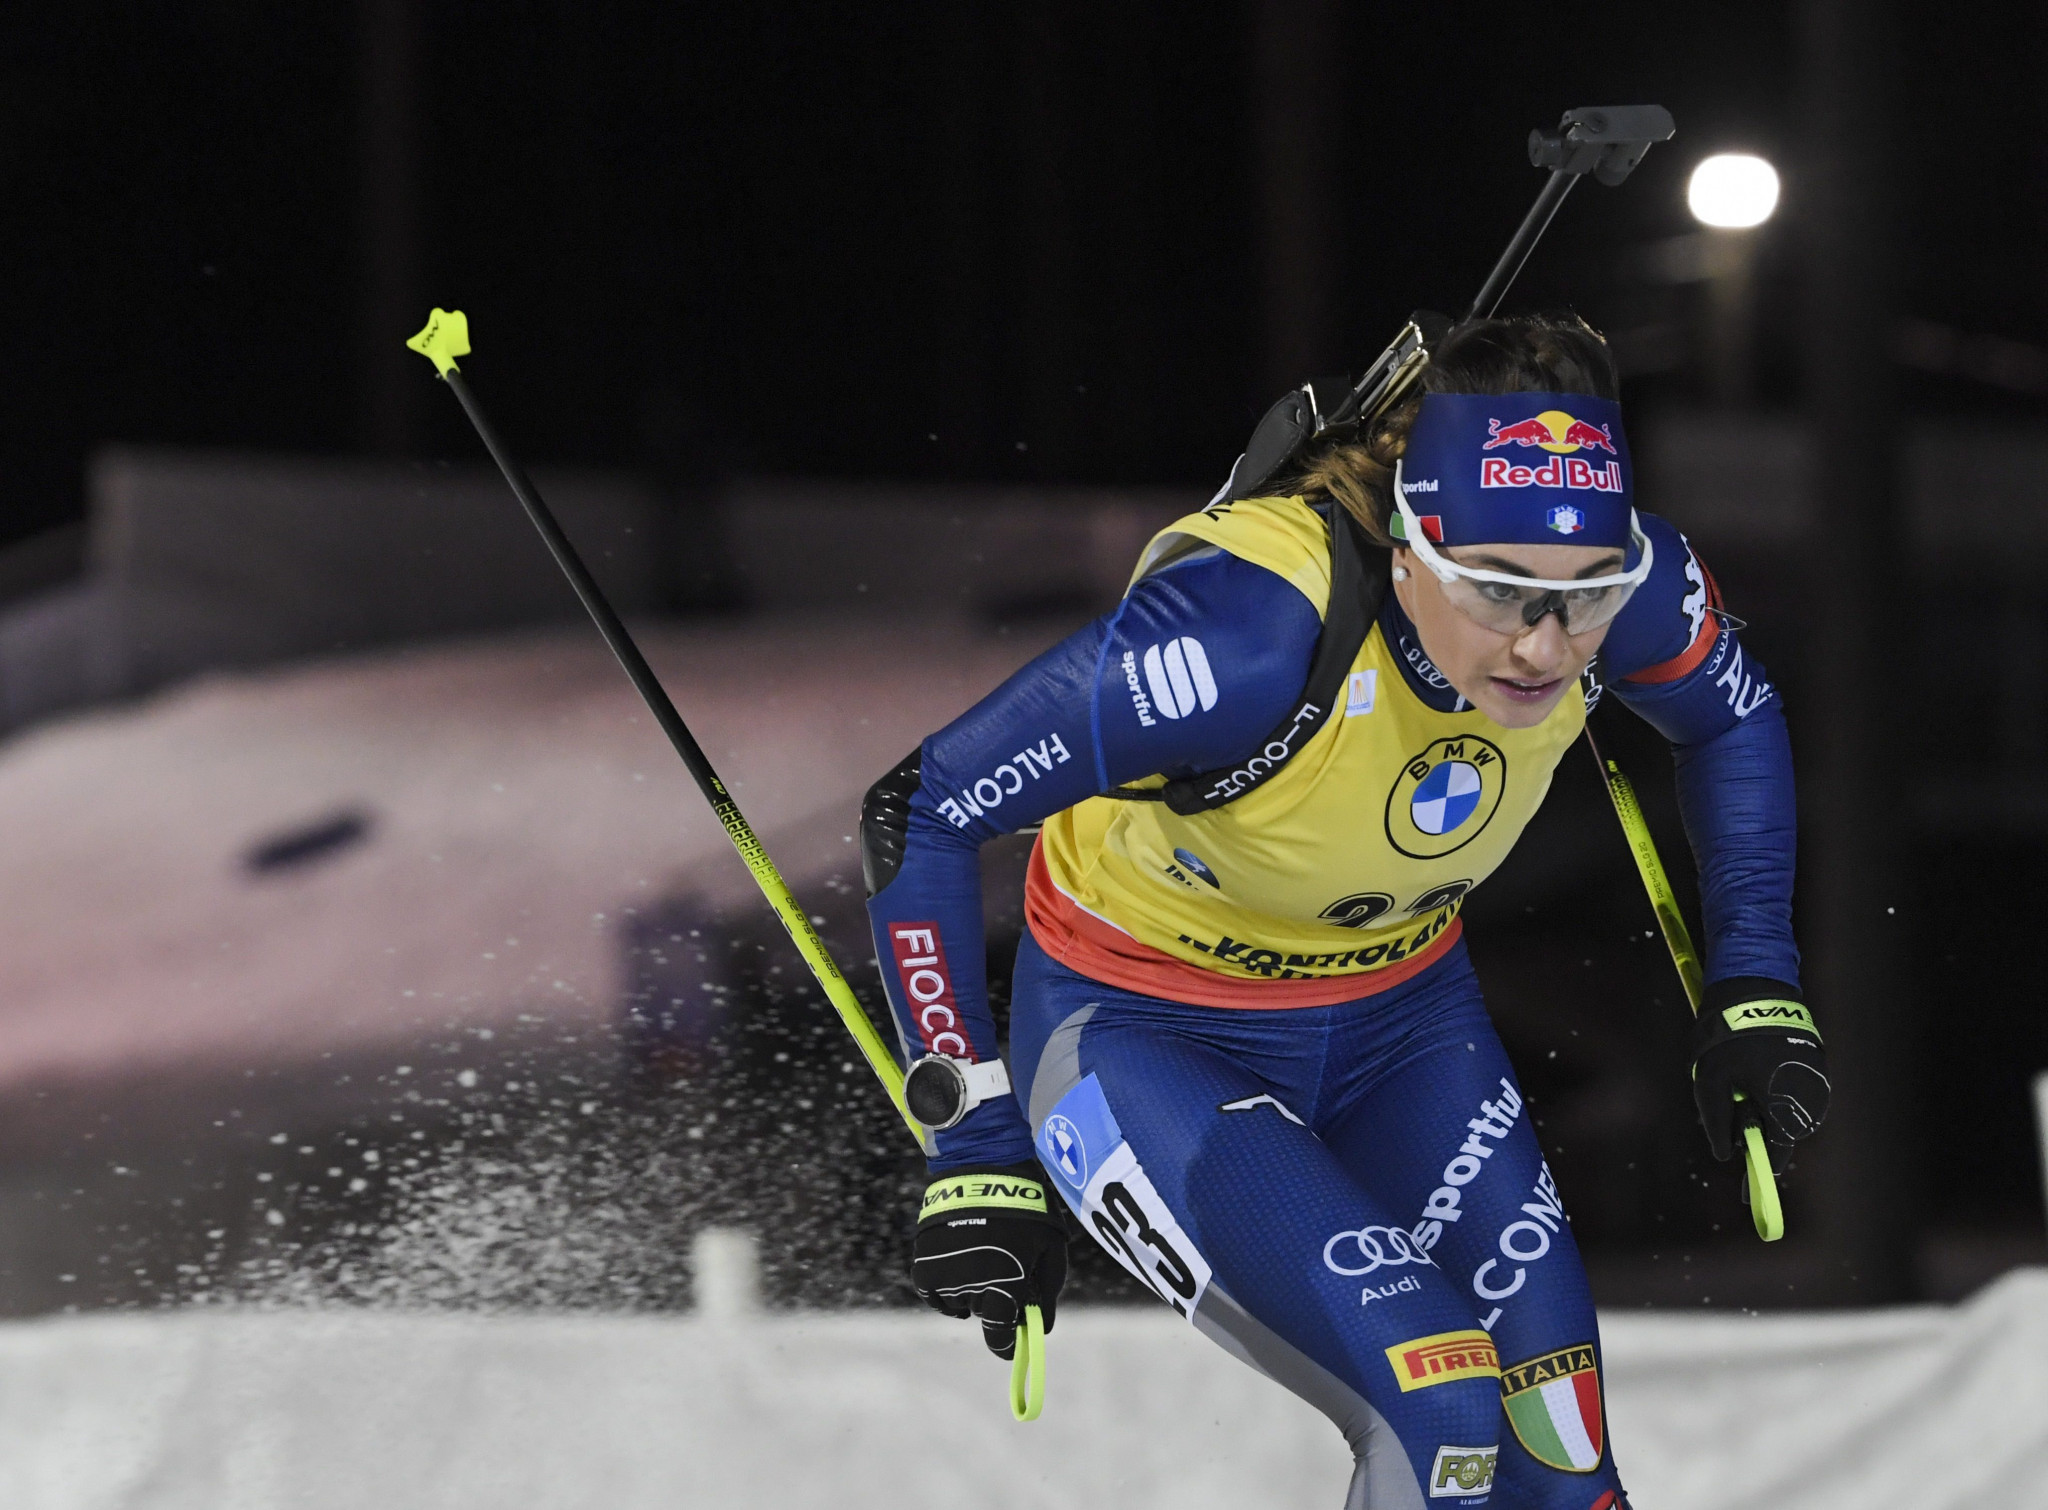 Wierer and Laegreid triumph at IBU World Cup season opener in Kontiolahti